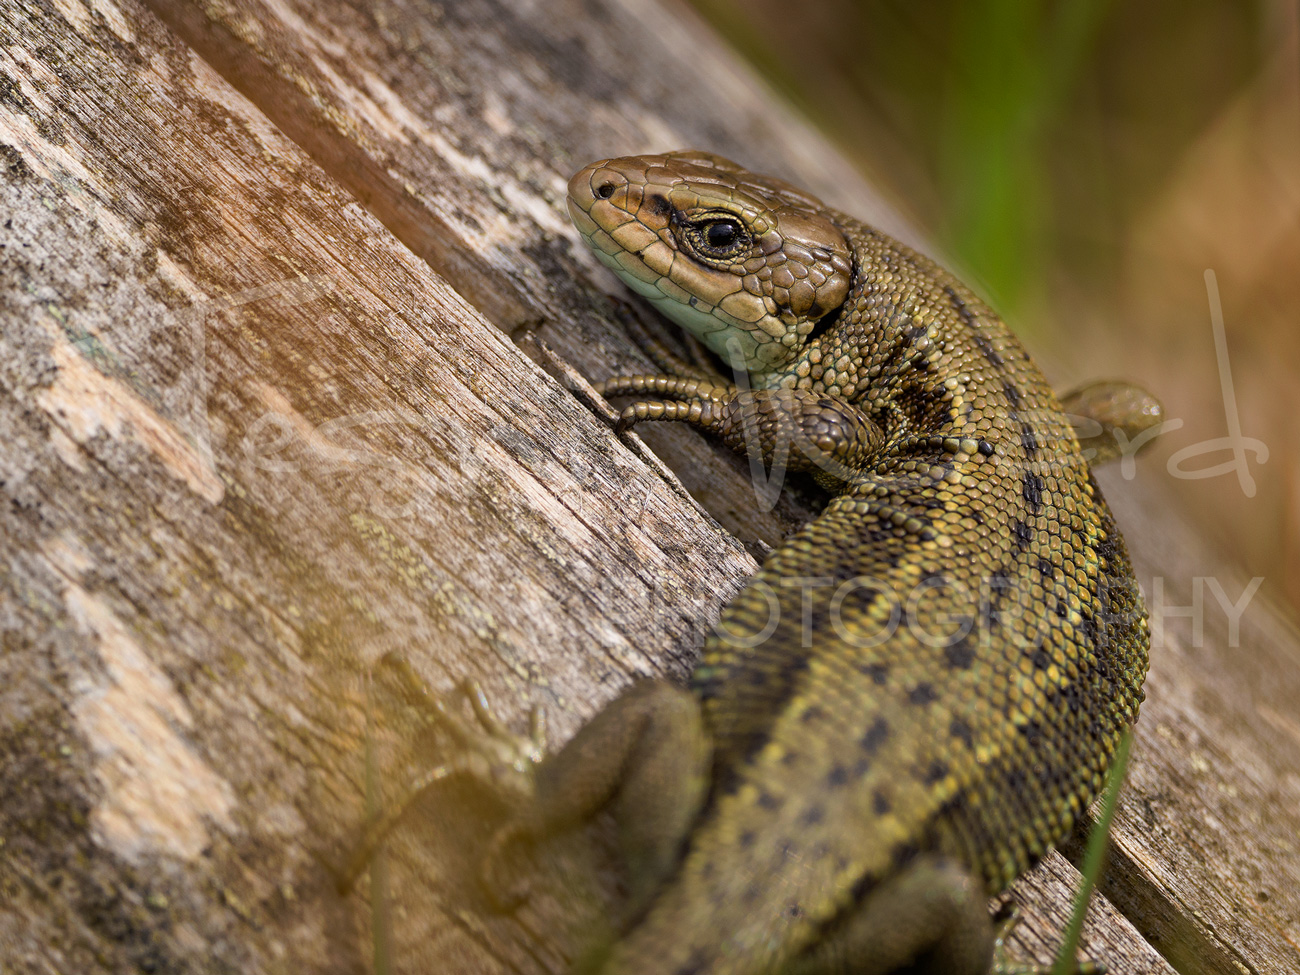 Olympus OMD EM1 MKII Review – A Wildlife Photographers Perspective